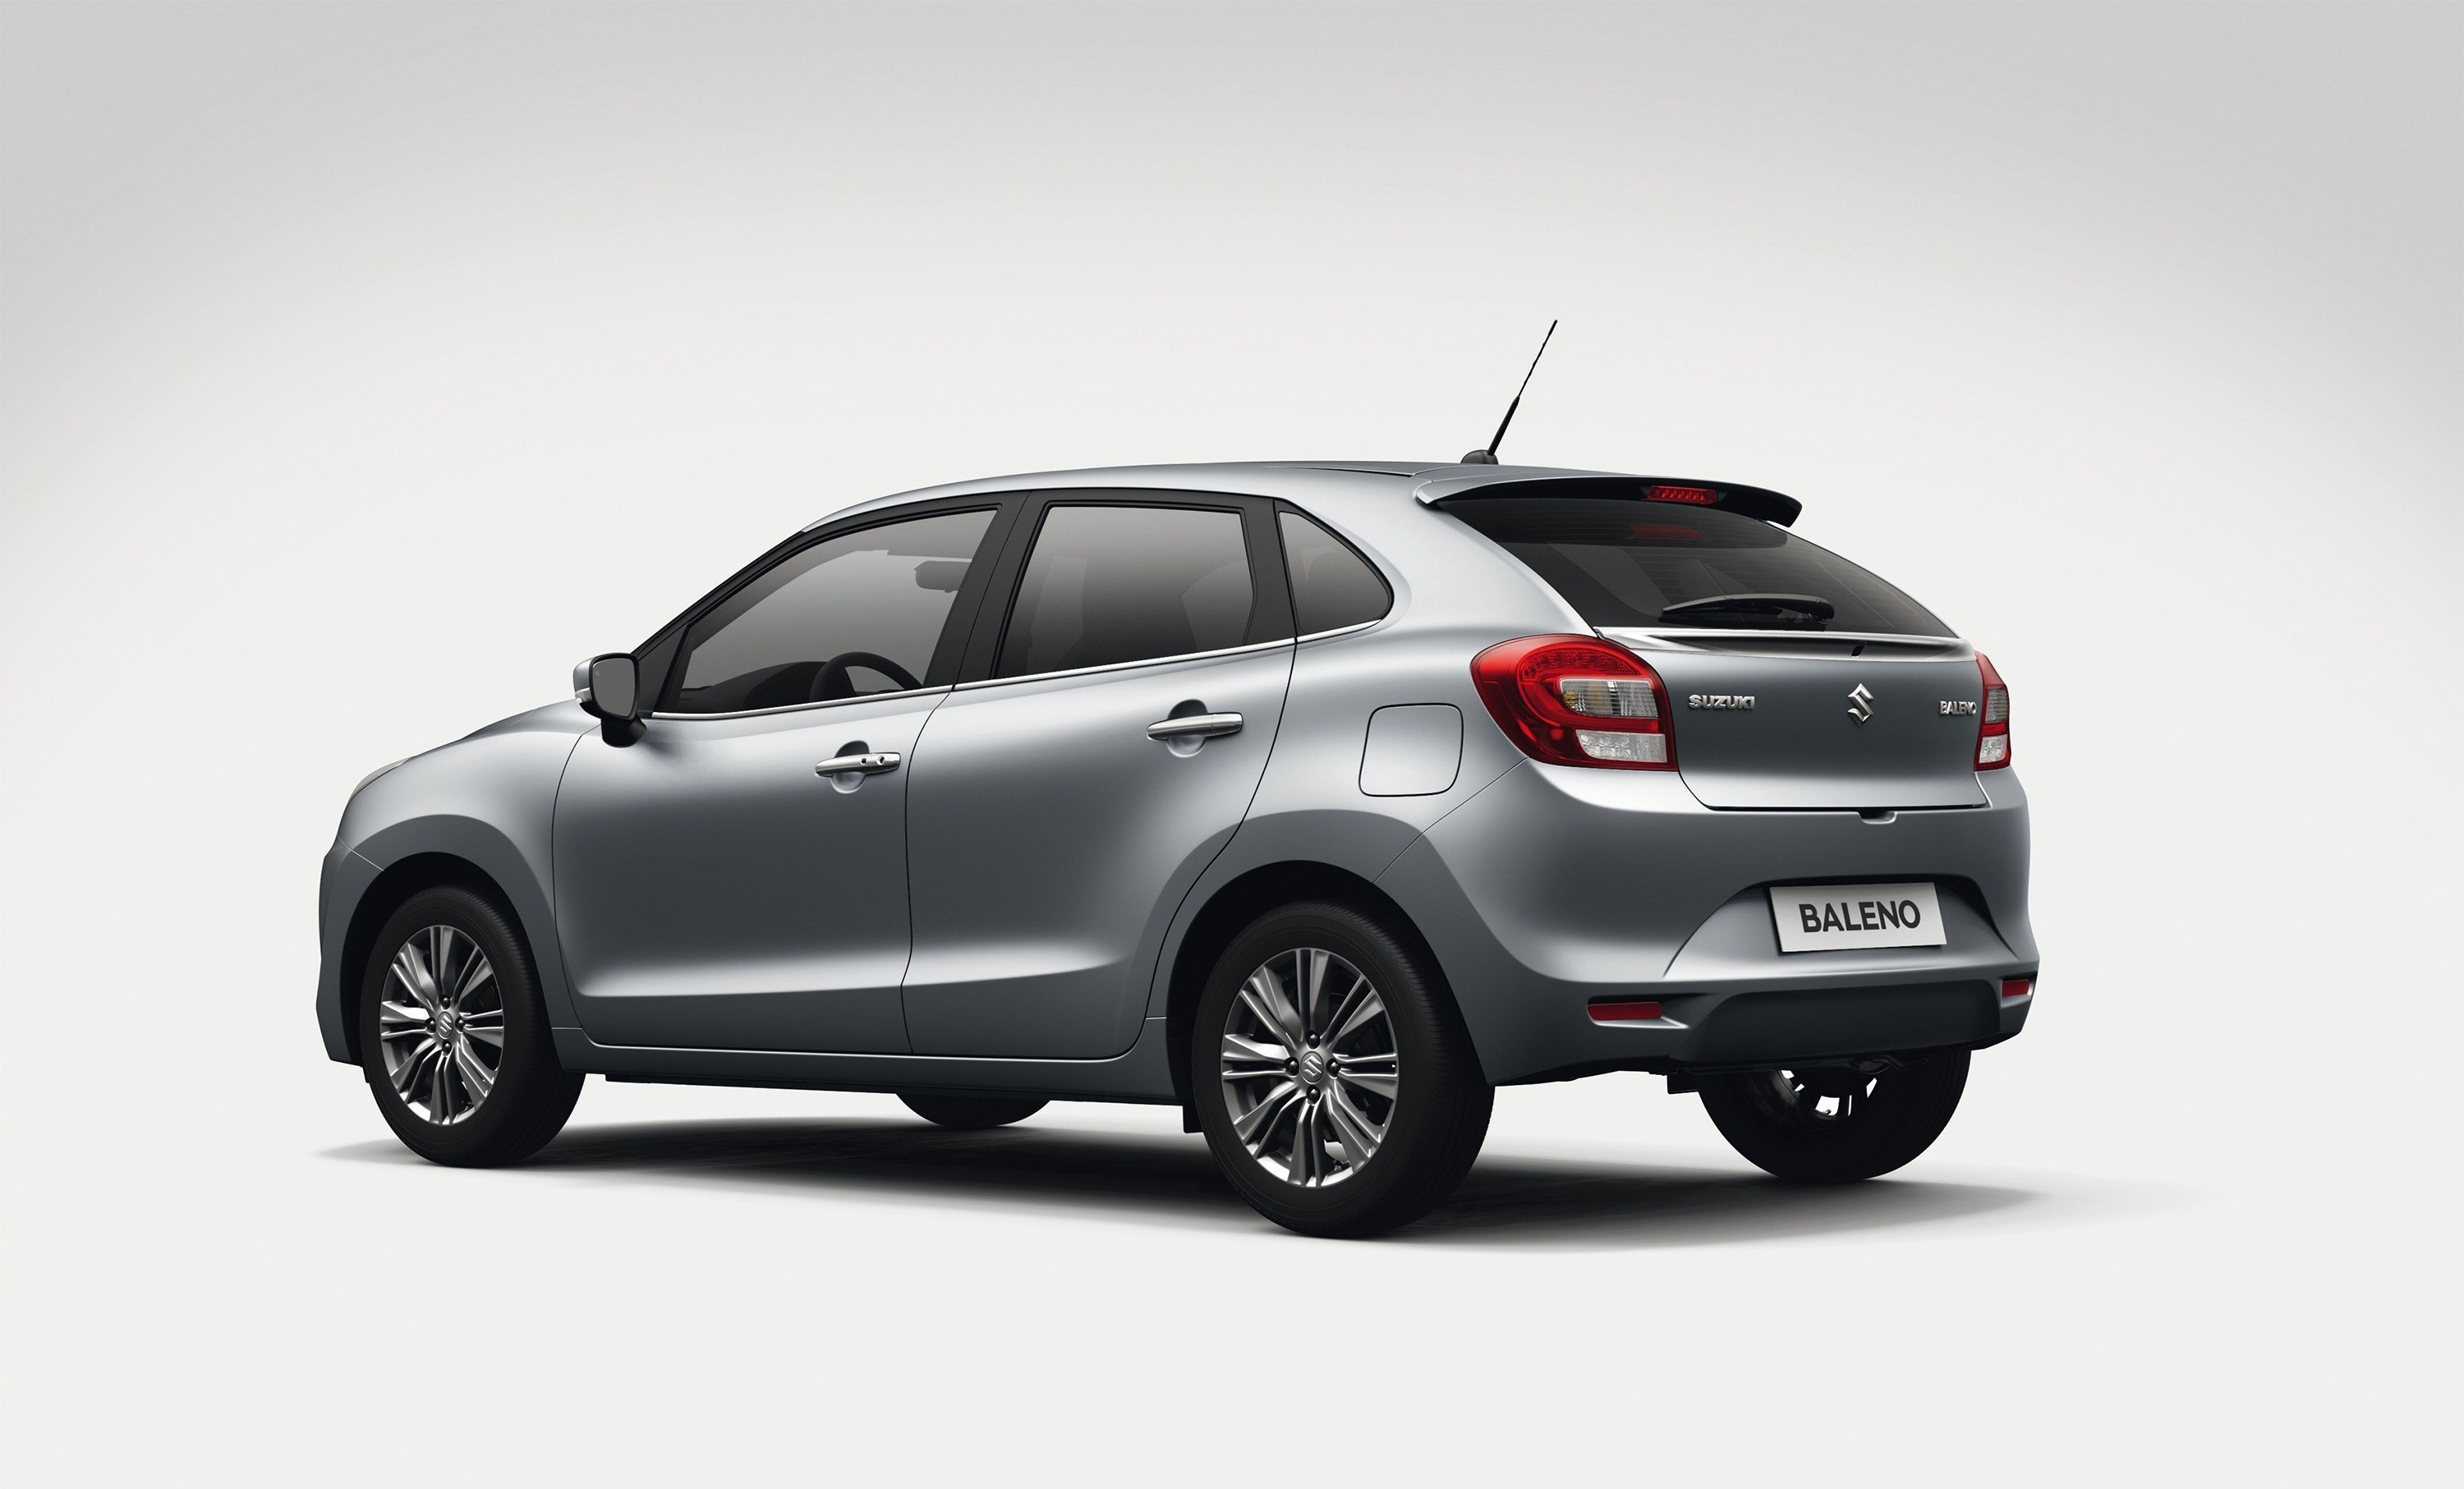 Latest Maruti Baleno Vs Dzire Comparison Price Mileage Free Download